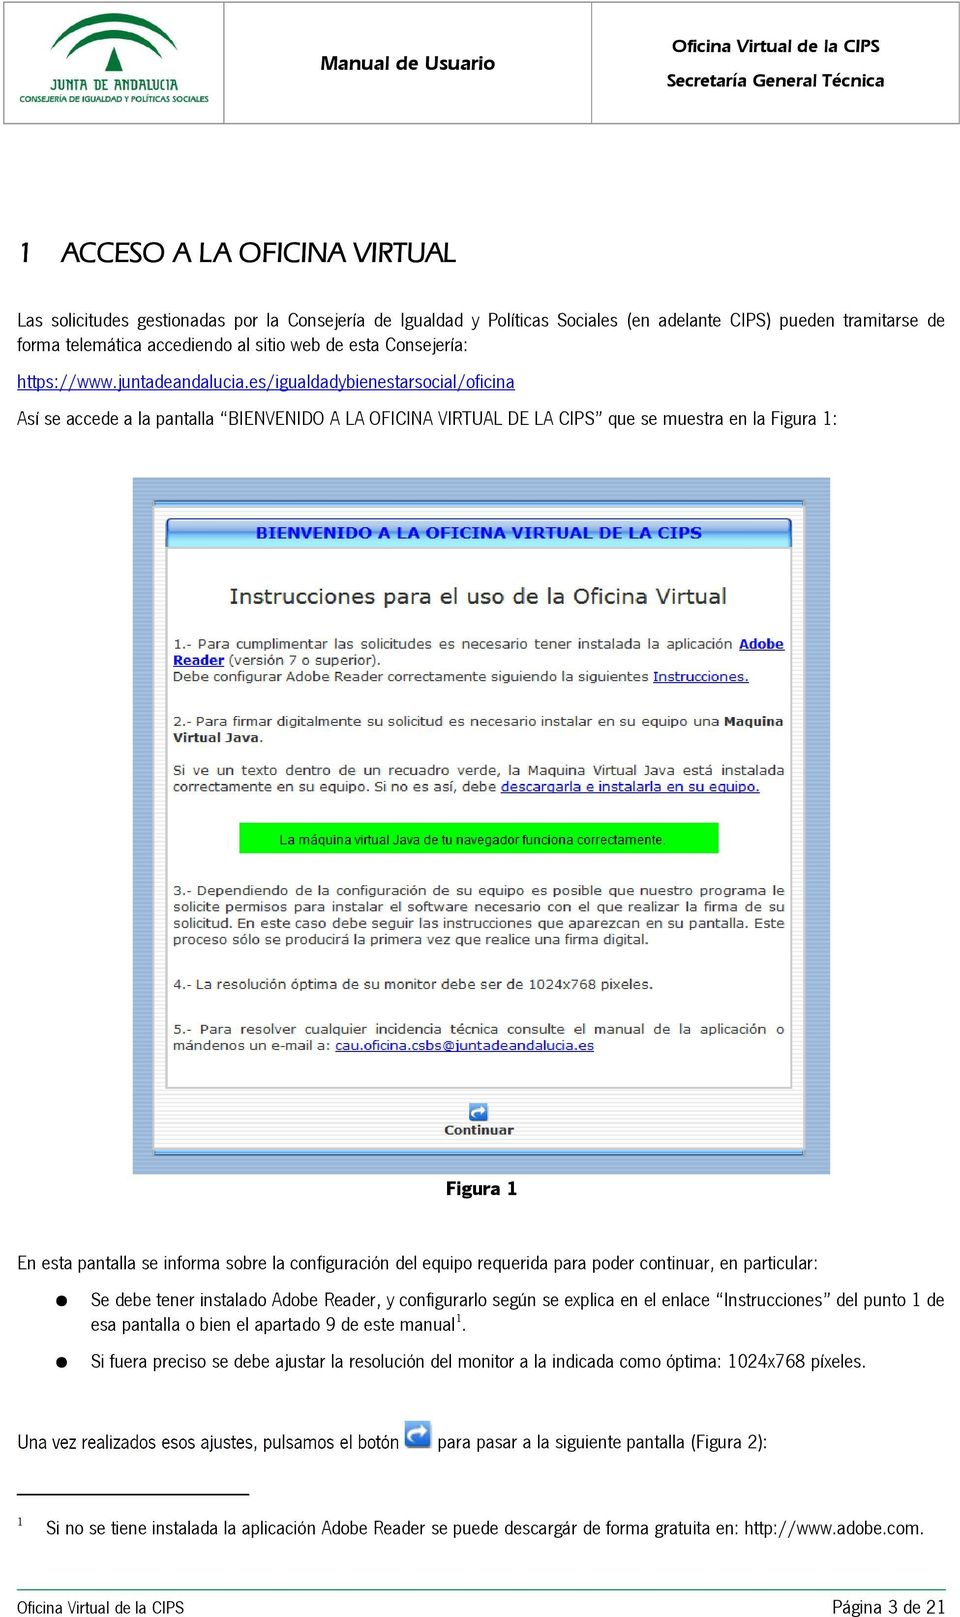 Oficina virtual de la cips pdf for Correos es oficina virtual